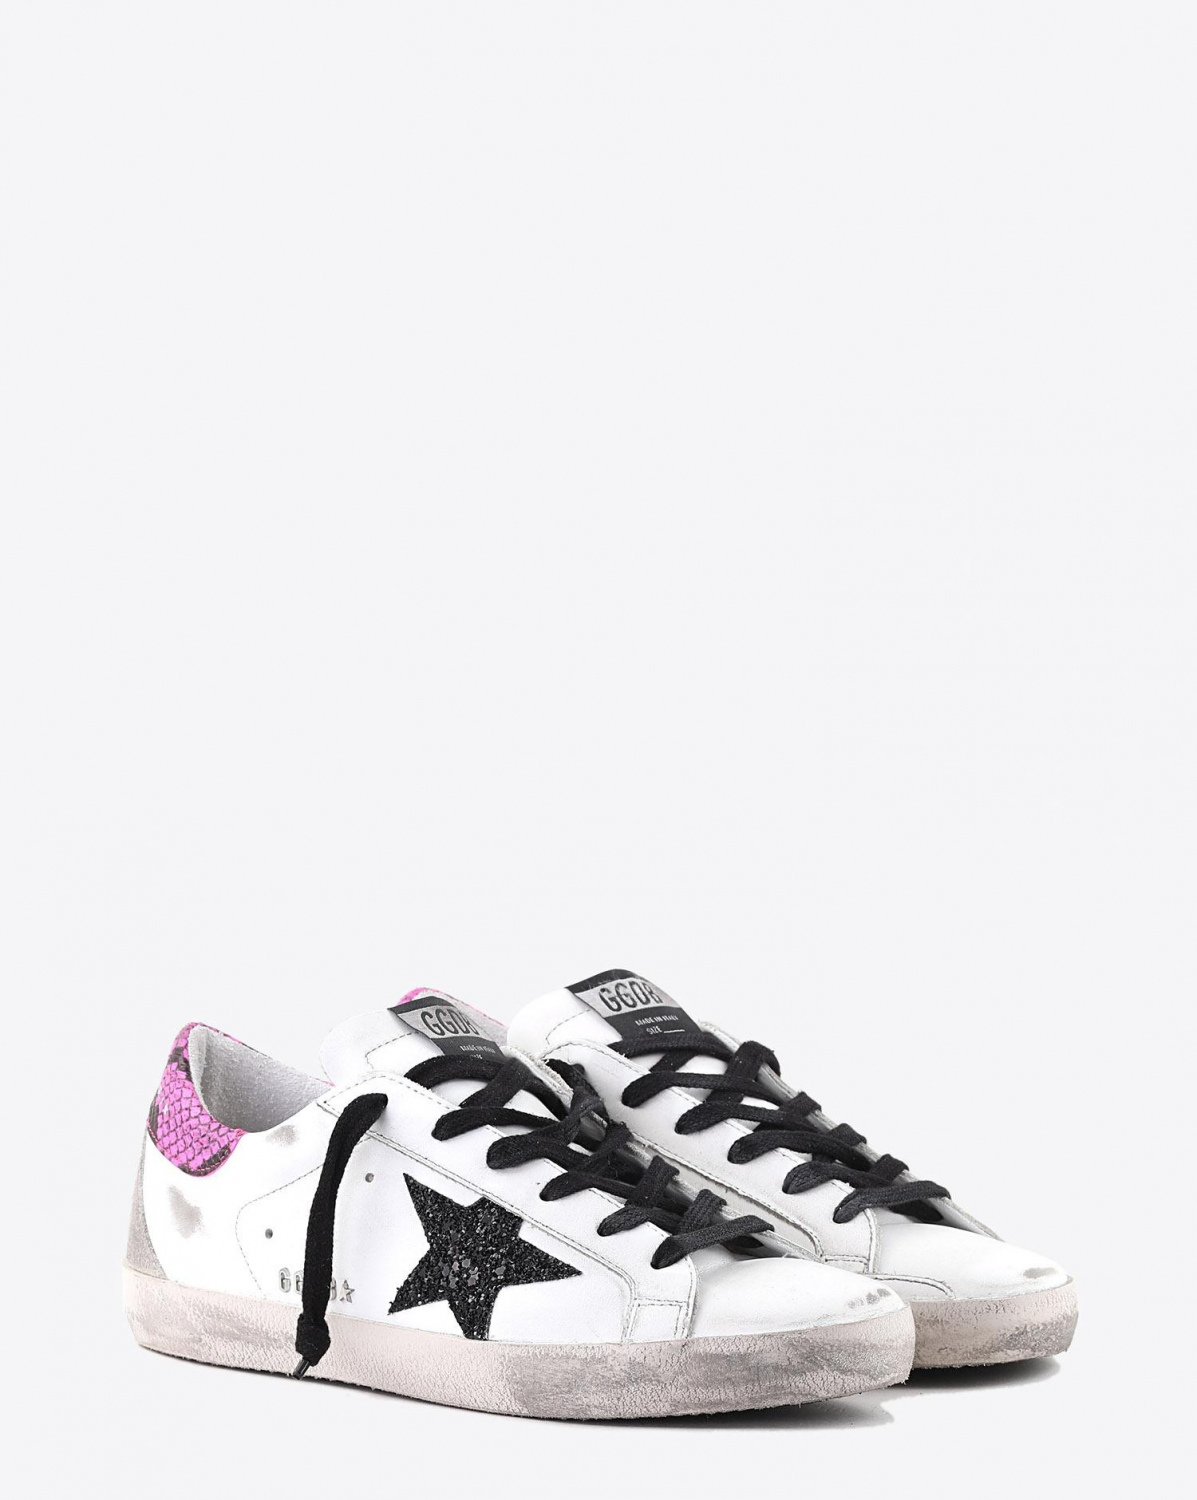 Golden Goose Woman Pré-Collection Sneakers Superstar - White Leather - Fuxia Python - Glitter Star